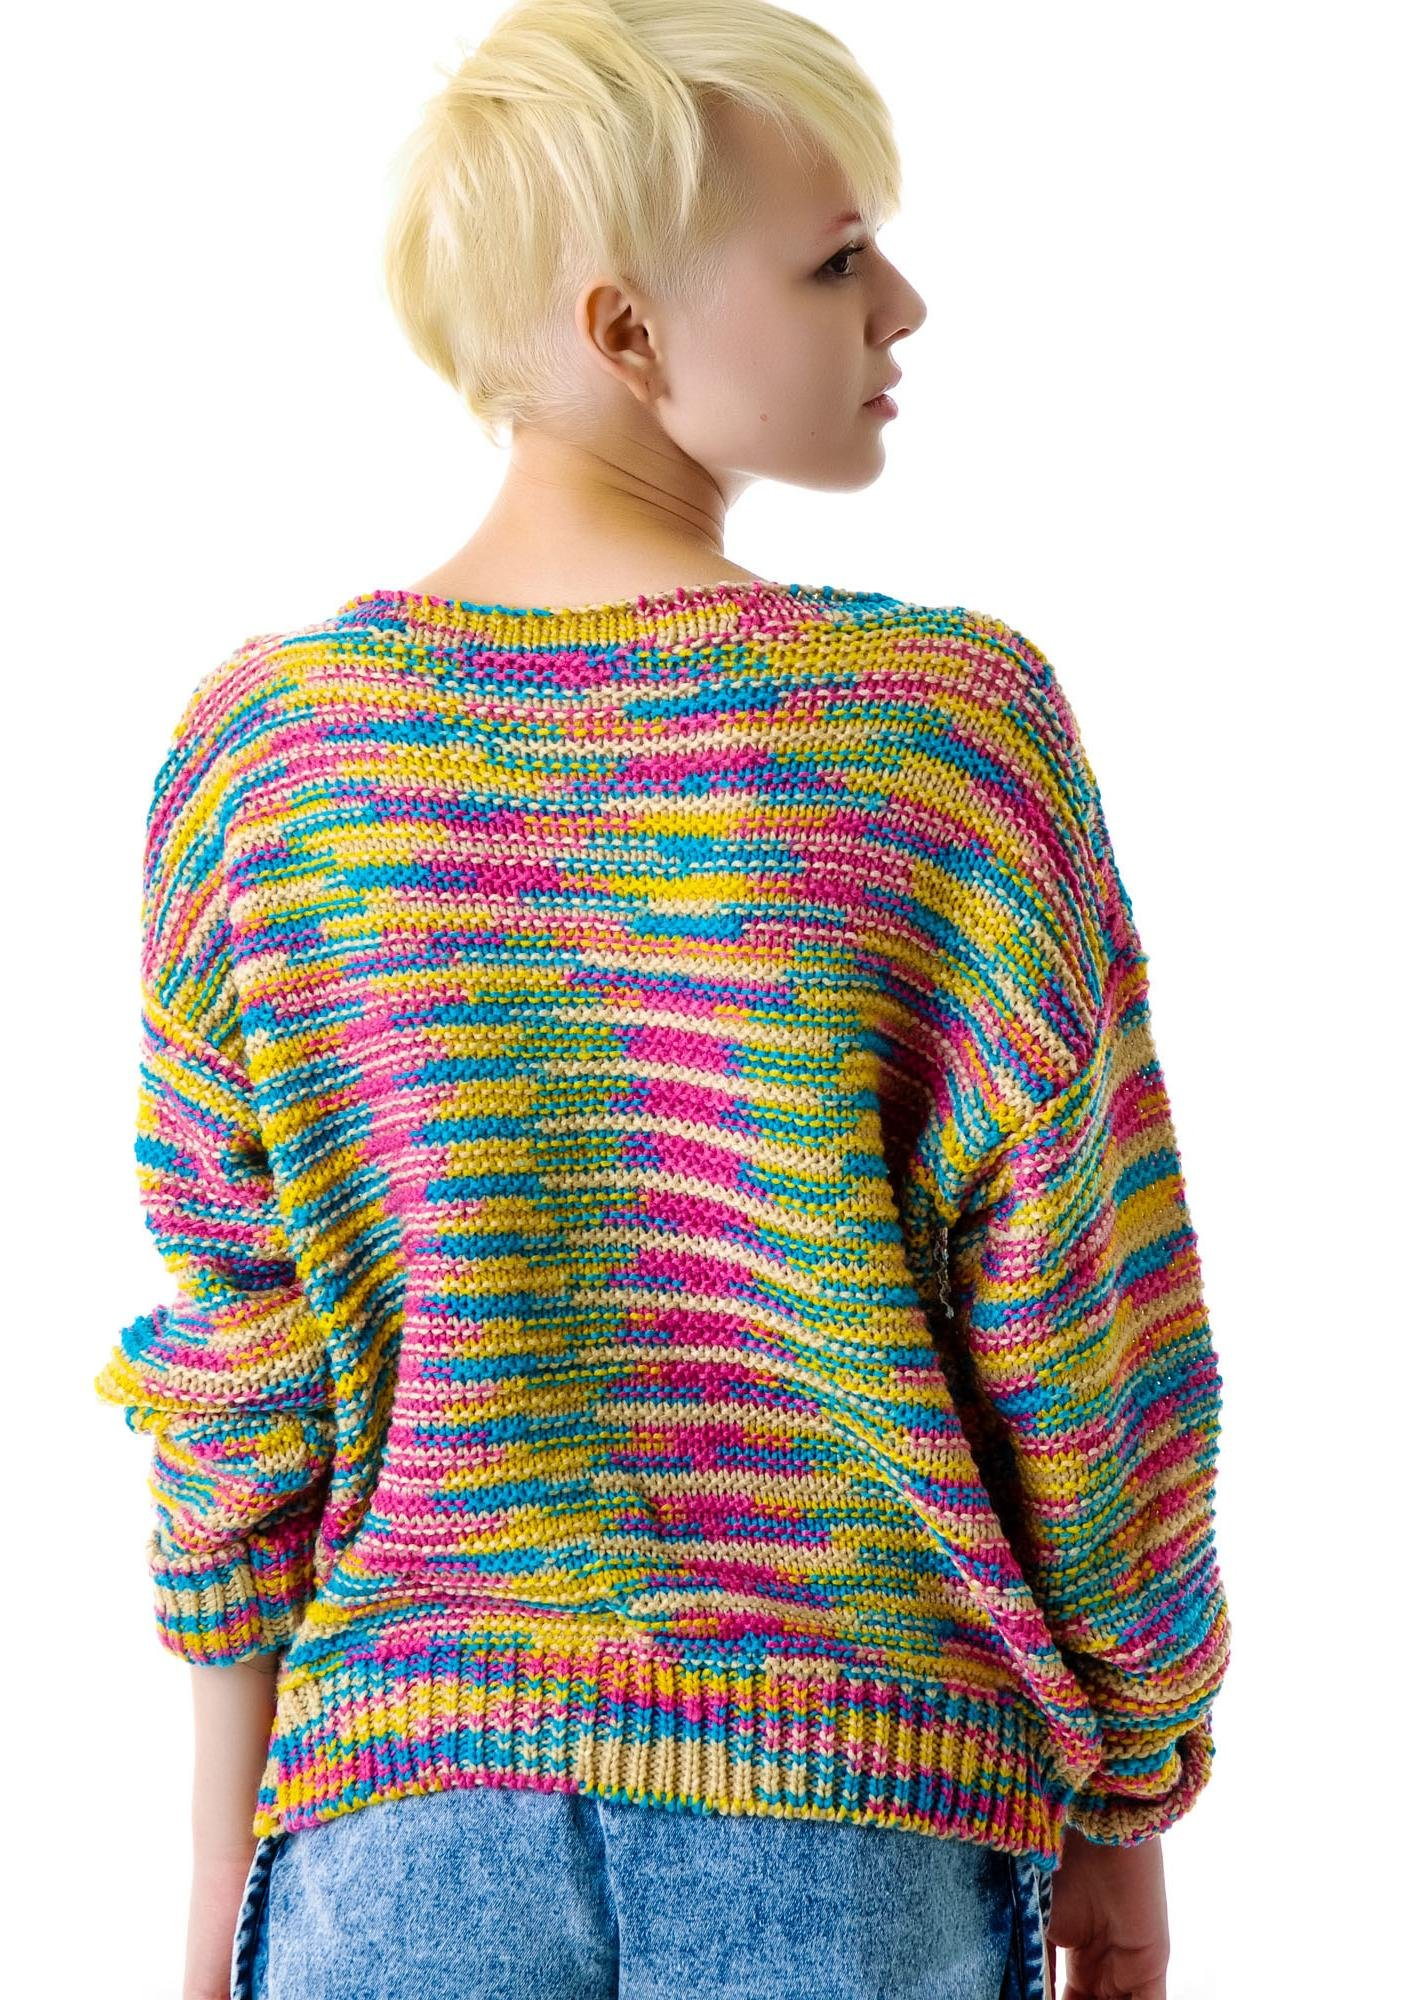 Starstruck By Rainbows Sweater